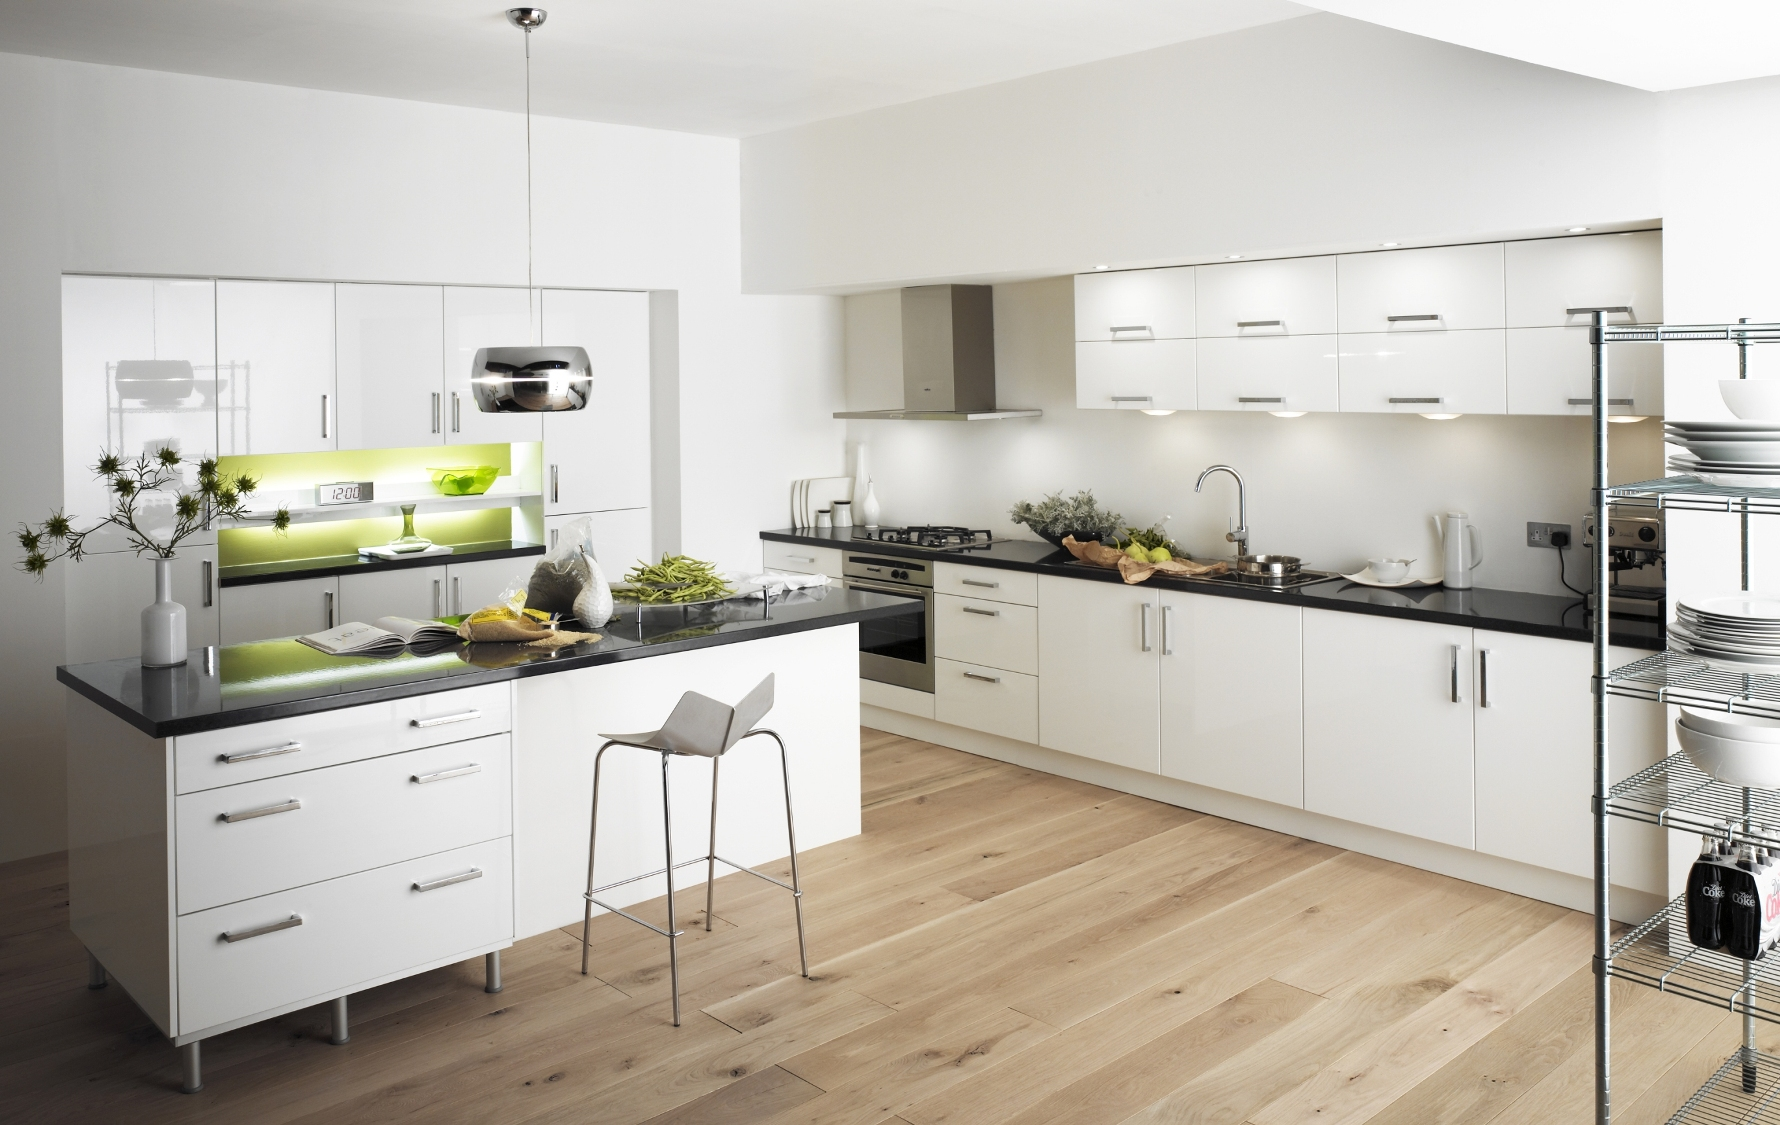 Simple Contemporary Kitchen Design Ideas for Your Lovely ... on Modern Kitchen Design Ideas  id=35747